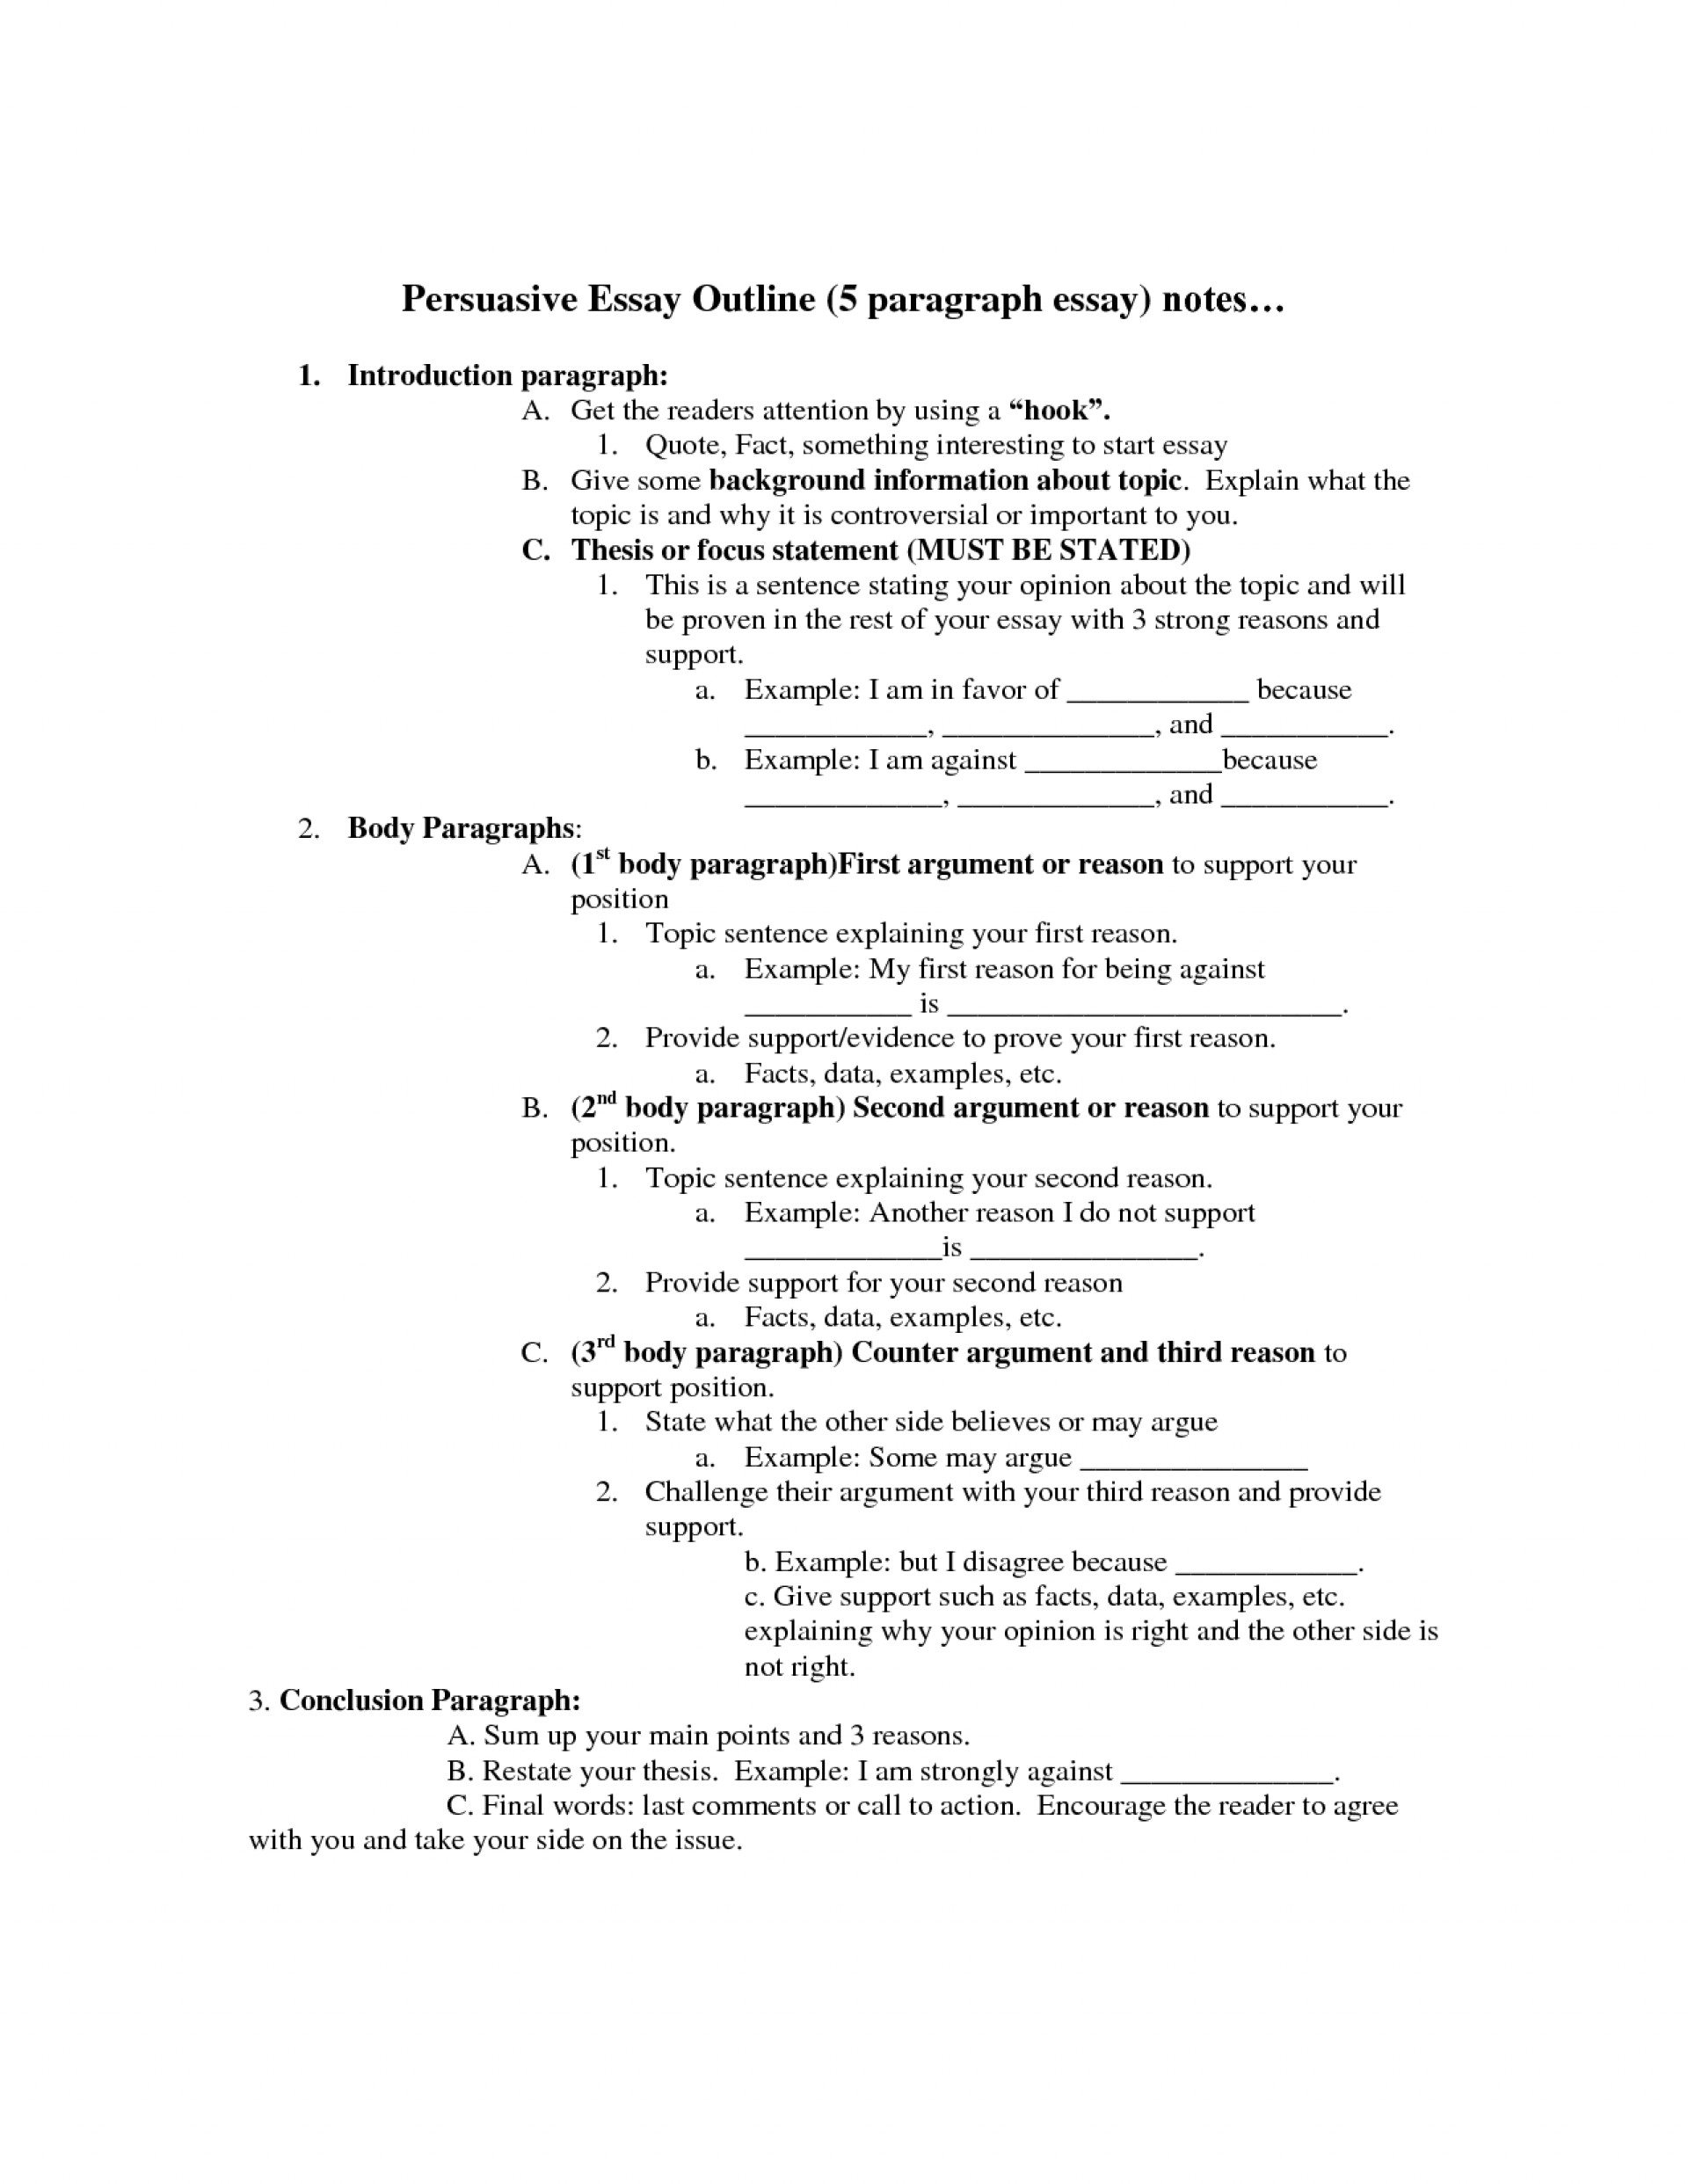 006 Persuasive Essay Outline Unbelievable Good Topics 5th Grade Format Middle School Example 1920